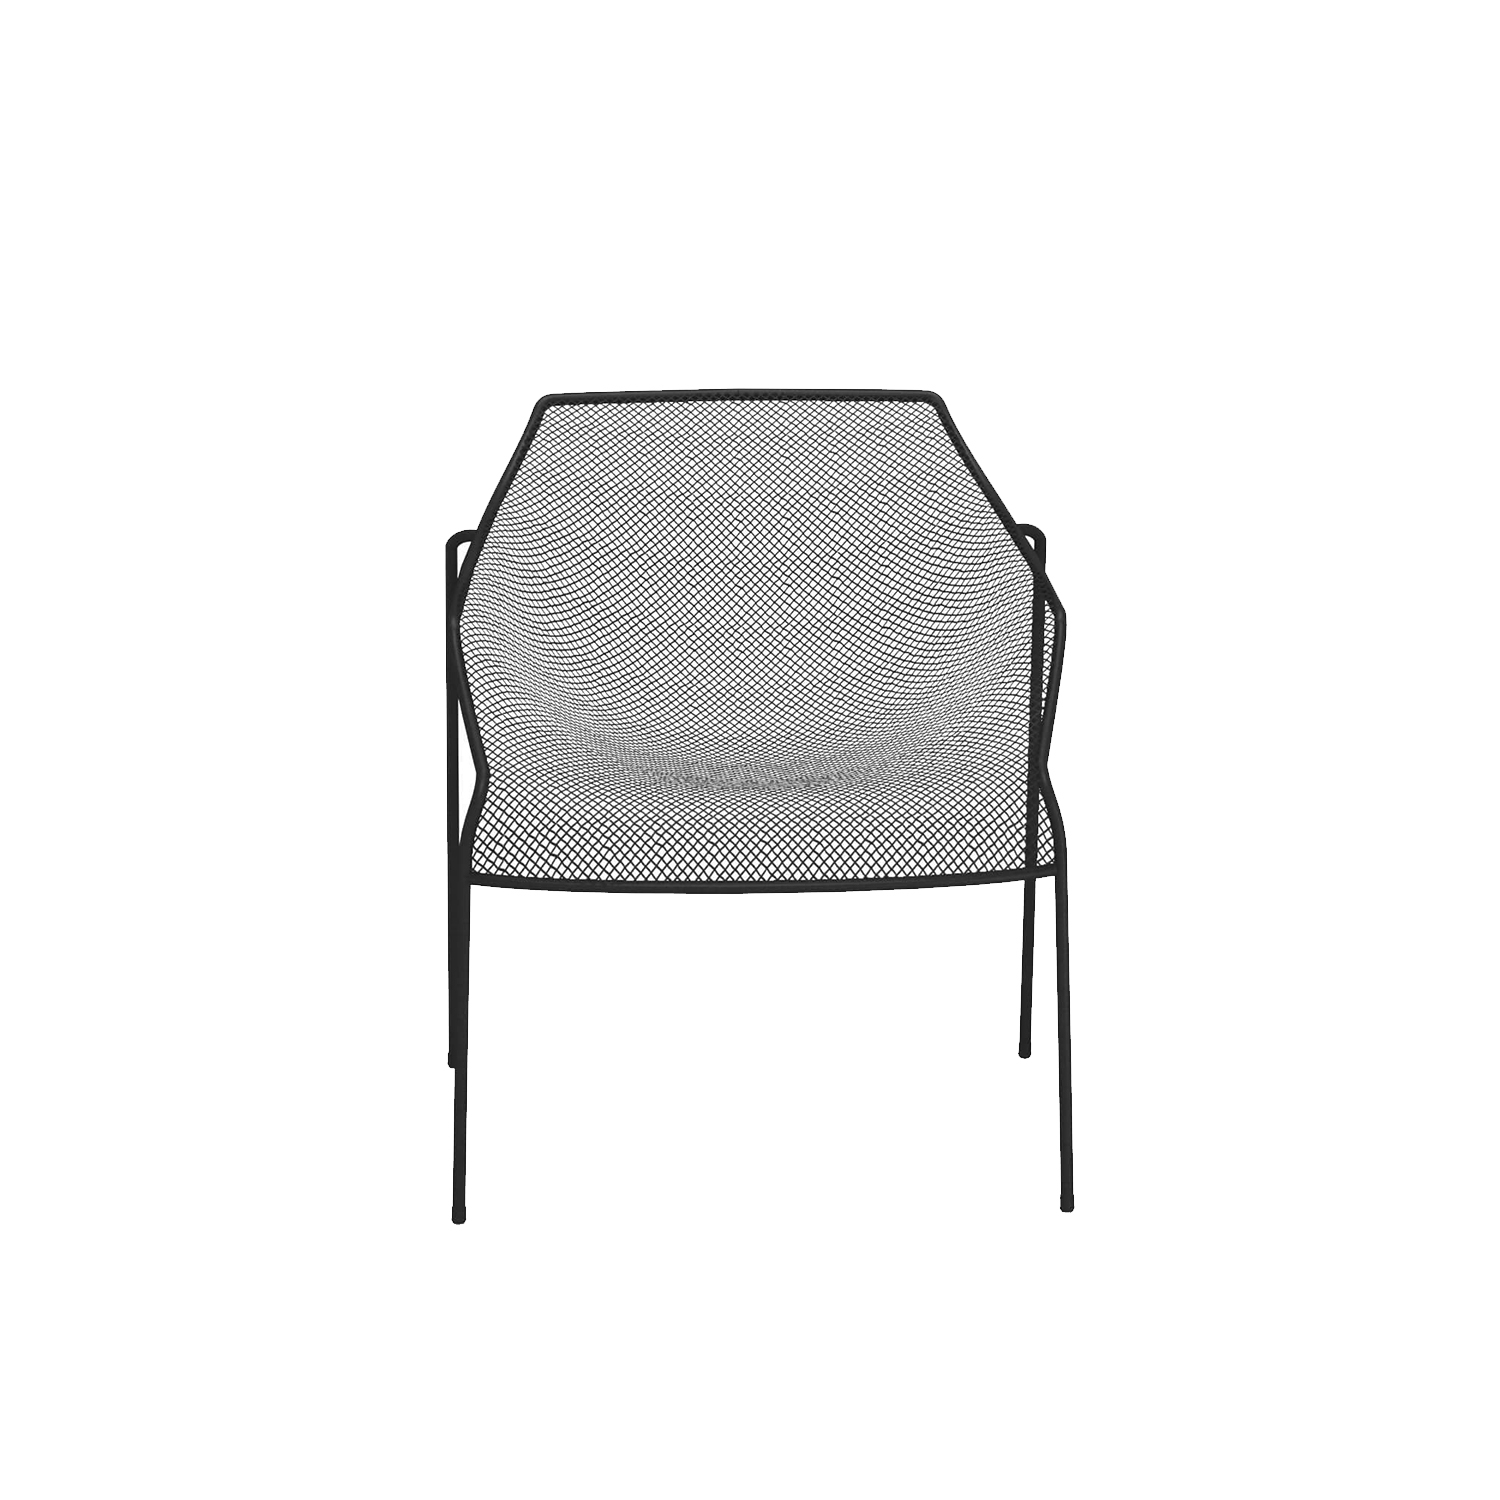 Heaven Armchair - Set of 2 - <p>The idea underlying the Heaven project is that of lightness derived from forms emerging from hollow spaces bordered by interweaving lines. The thin, woven steel frame is the distinctive feature of a collection marked by well-proportioned lines and overall harmony. Steel chairs paired with transparent glass tops lighten the table surfaces, lending them an intangible quality.</p>  | Matter of Stuff